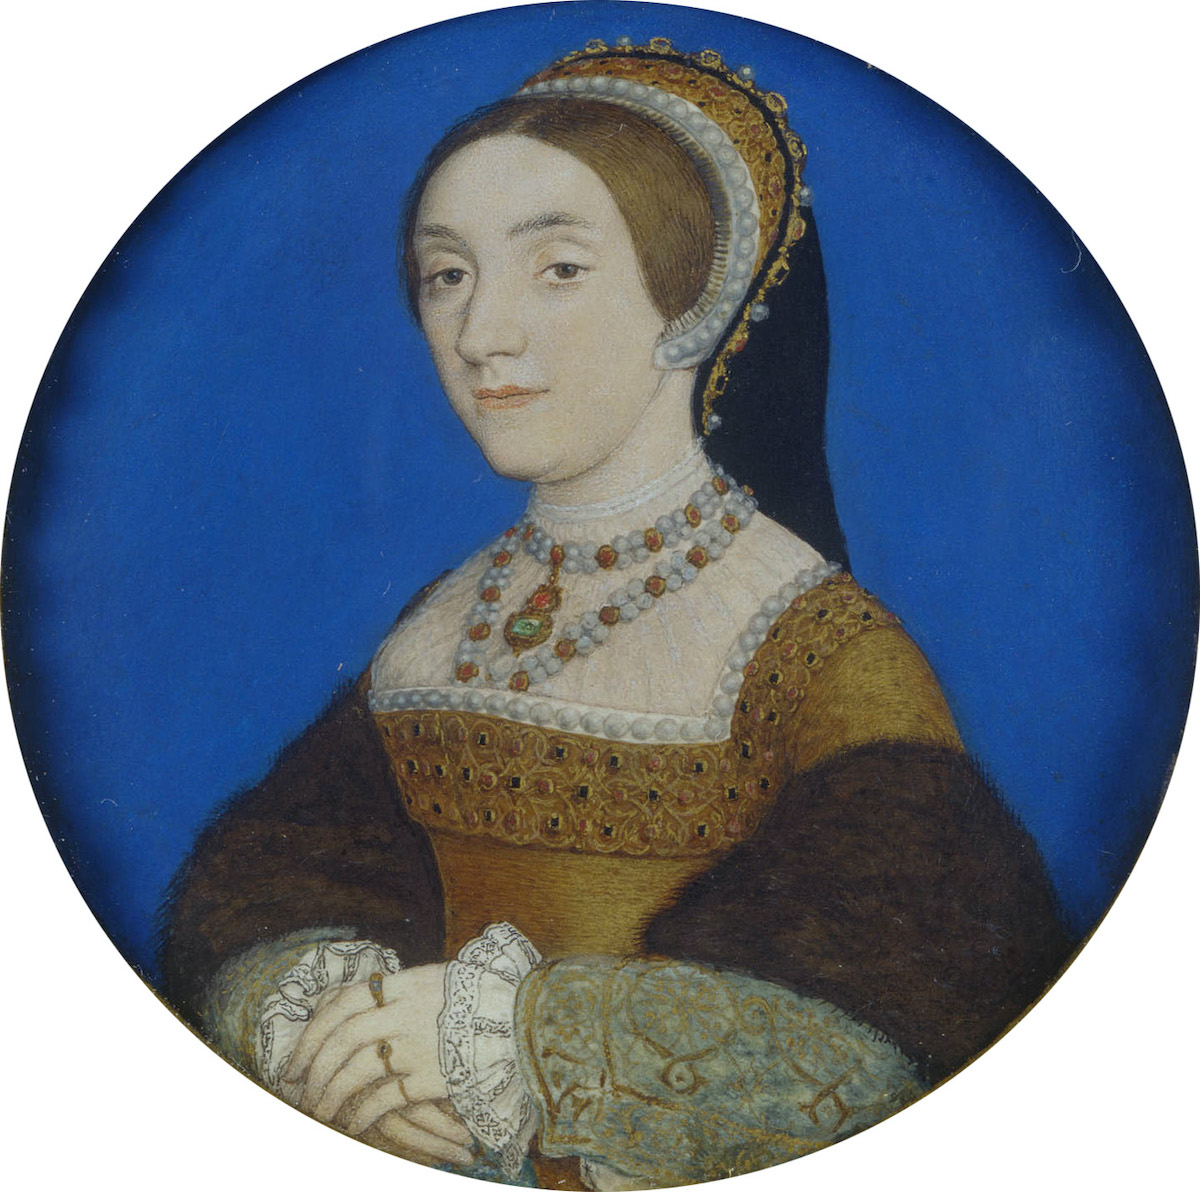 Hans_Holbein_the_Younger_-_Portrait_of_a_Lady_perhaps_Katherine_Howard_Royal_Collection (1).jpg